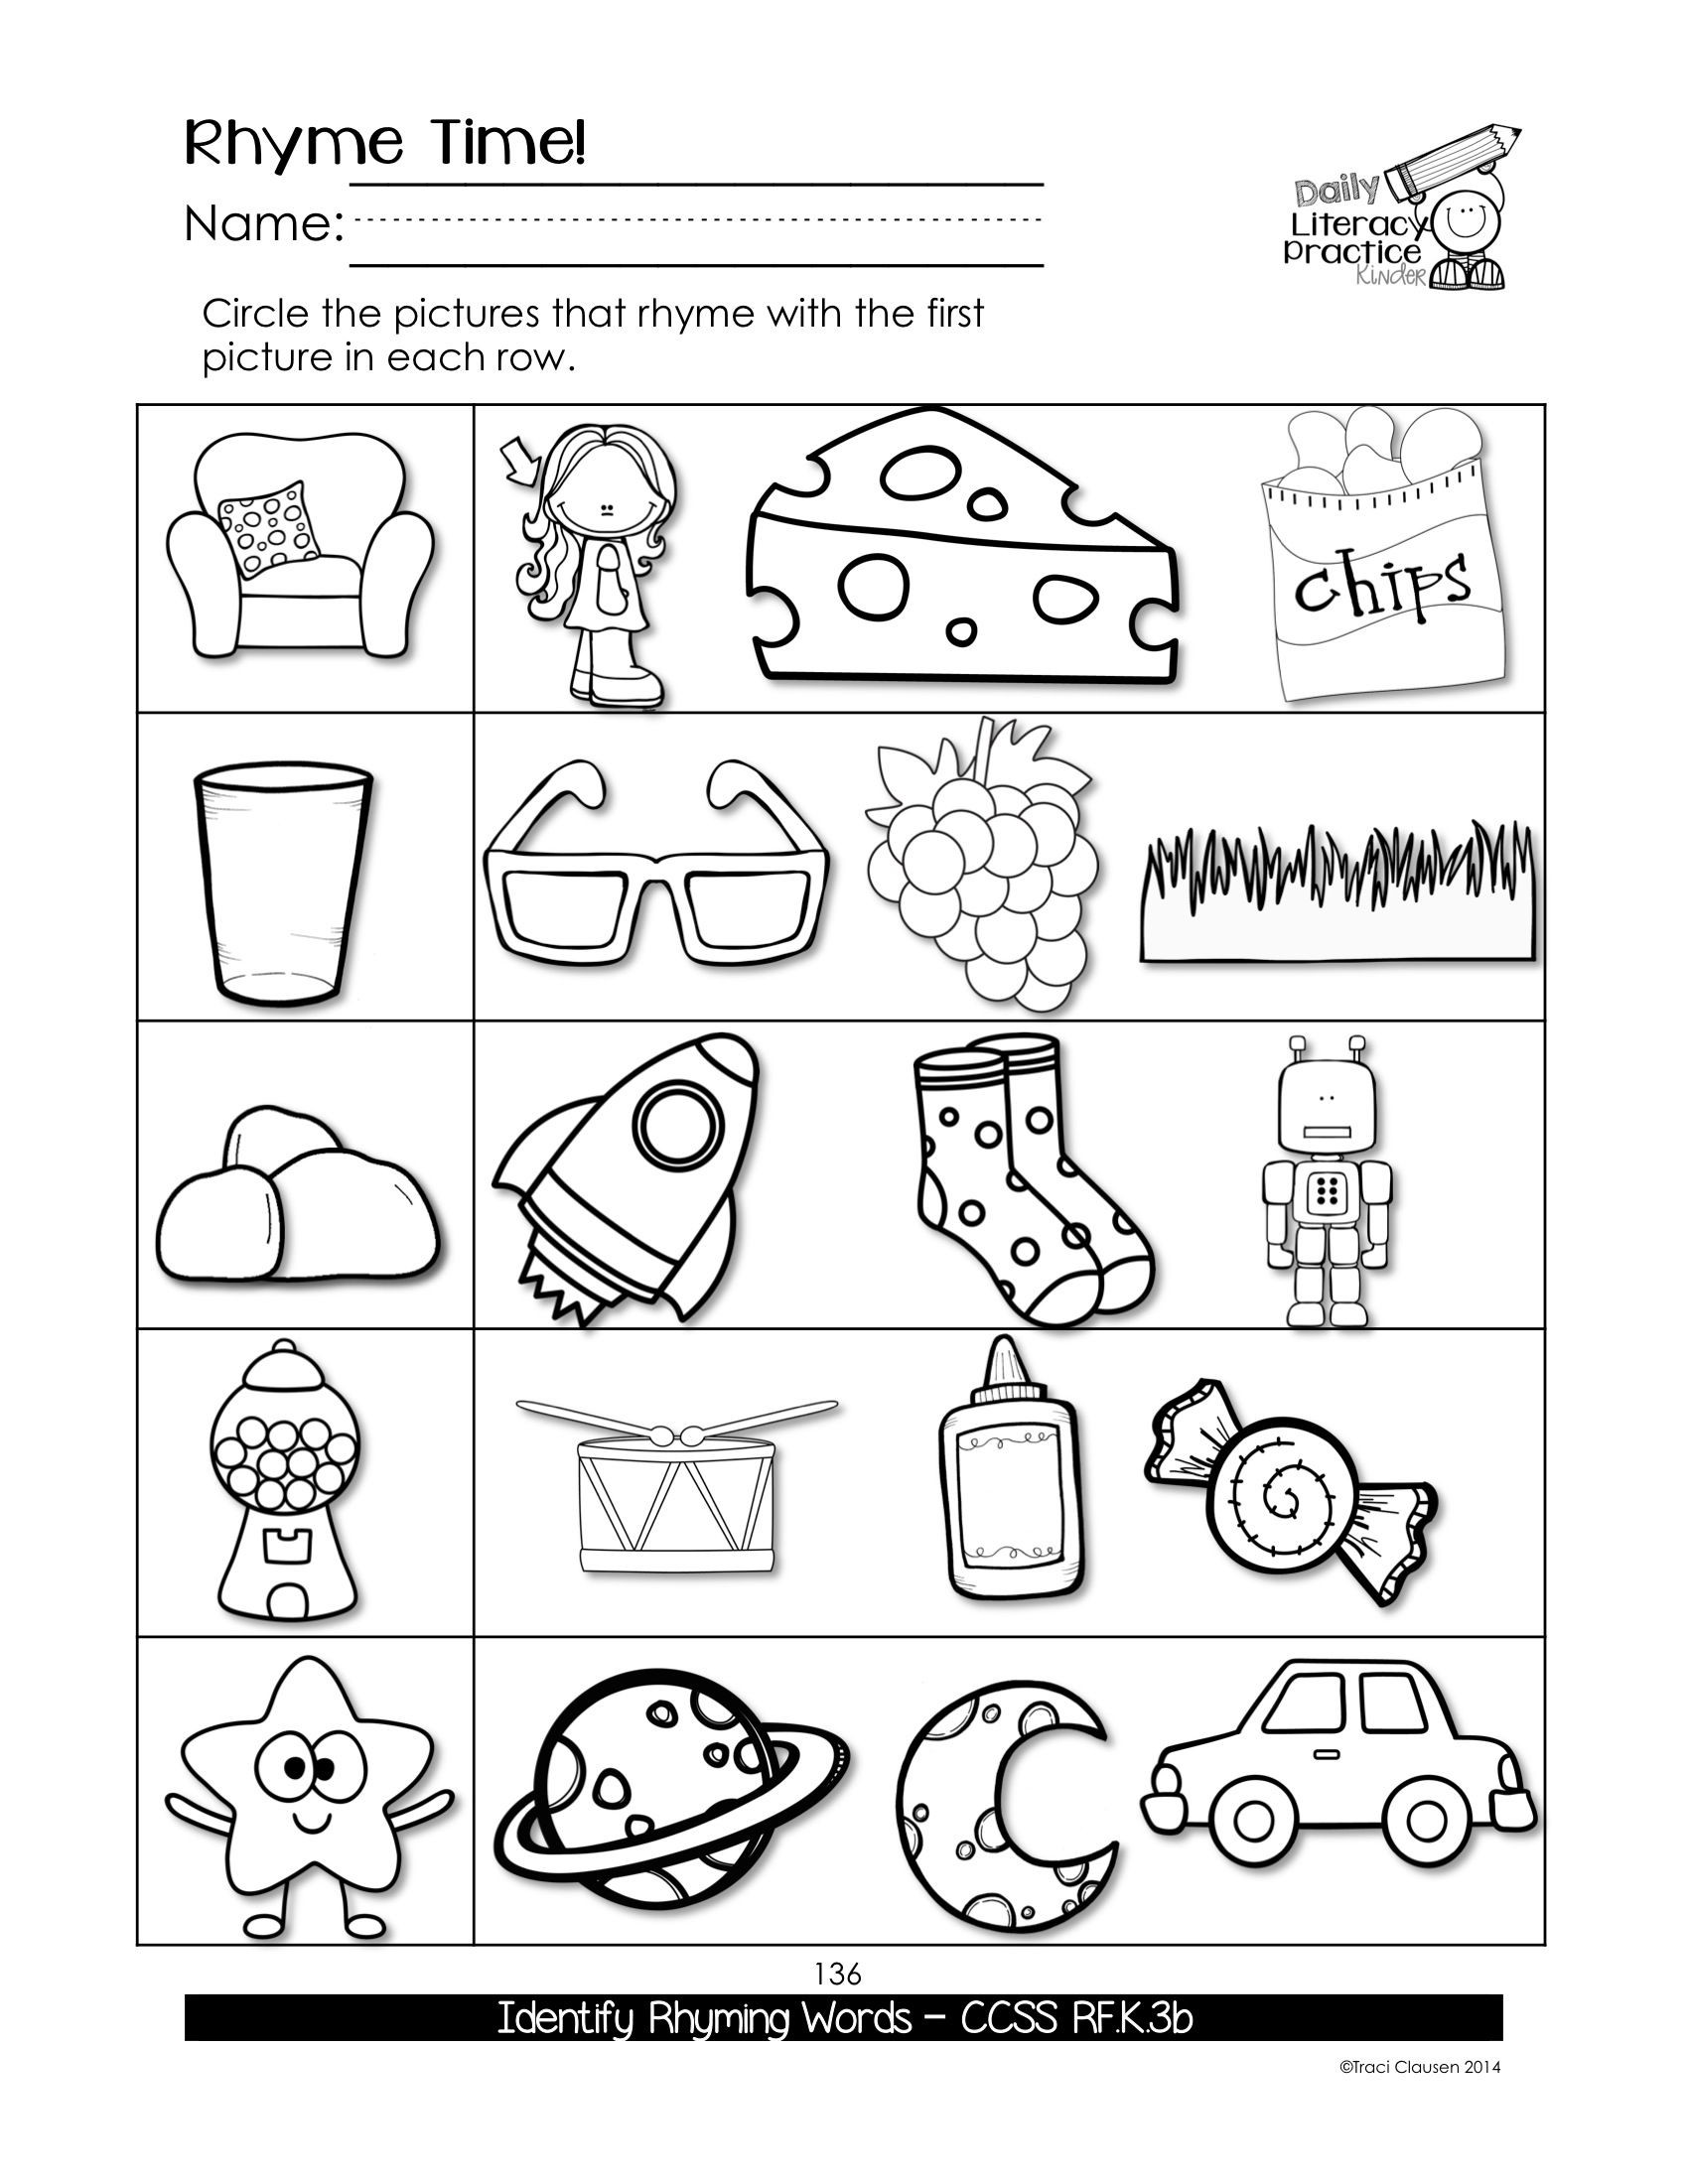 Rhyming Worksheets 1st Grade Kindergarten Phonics & Sight Words Practice Daily Literacy